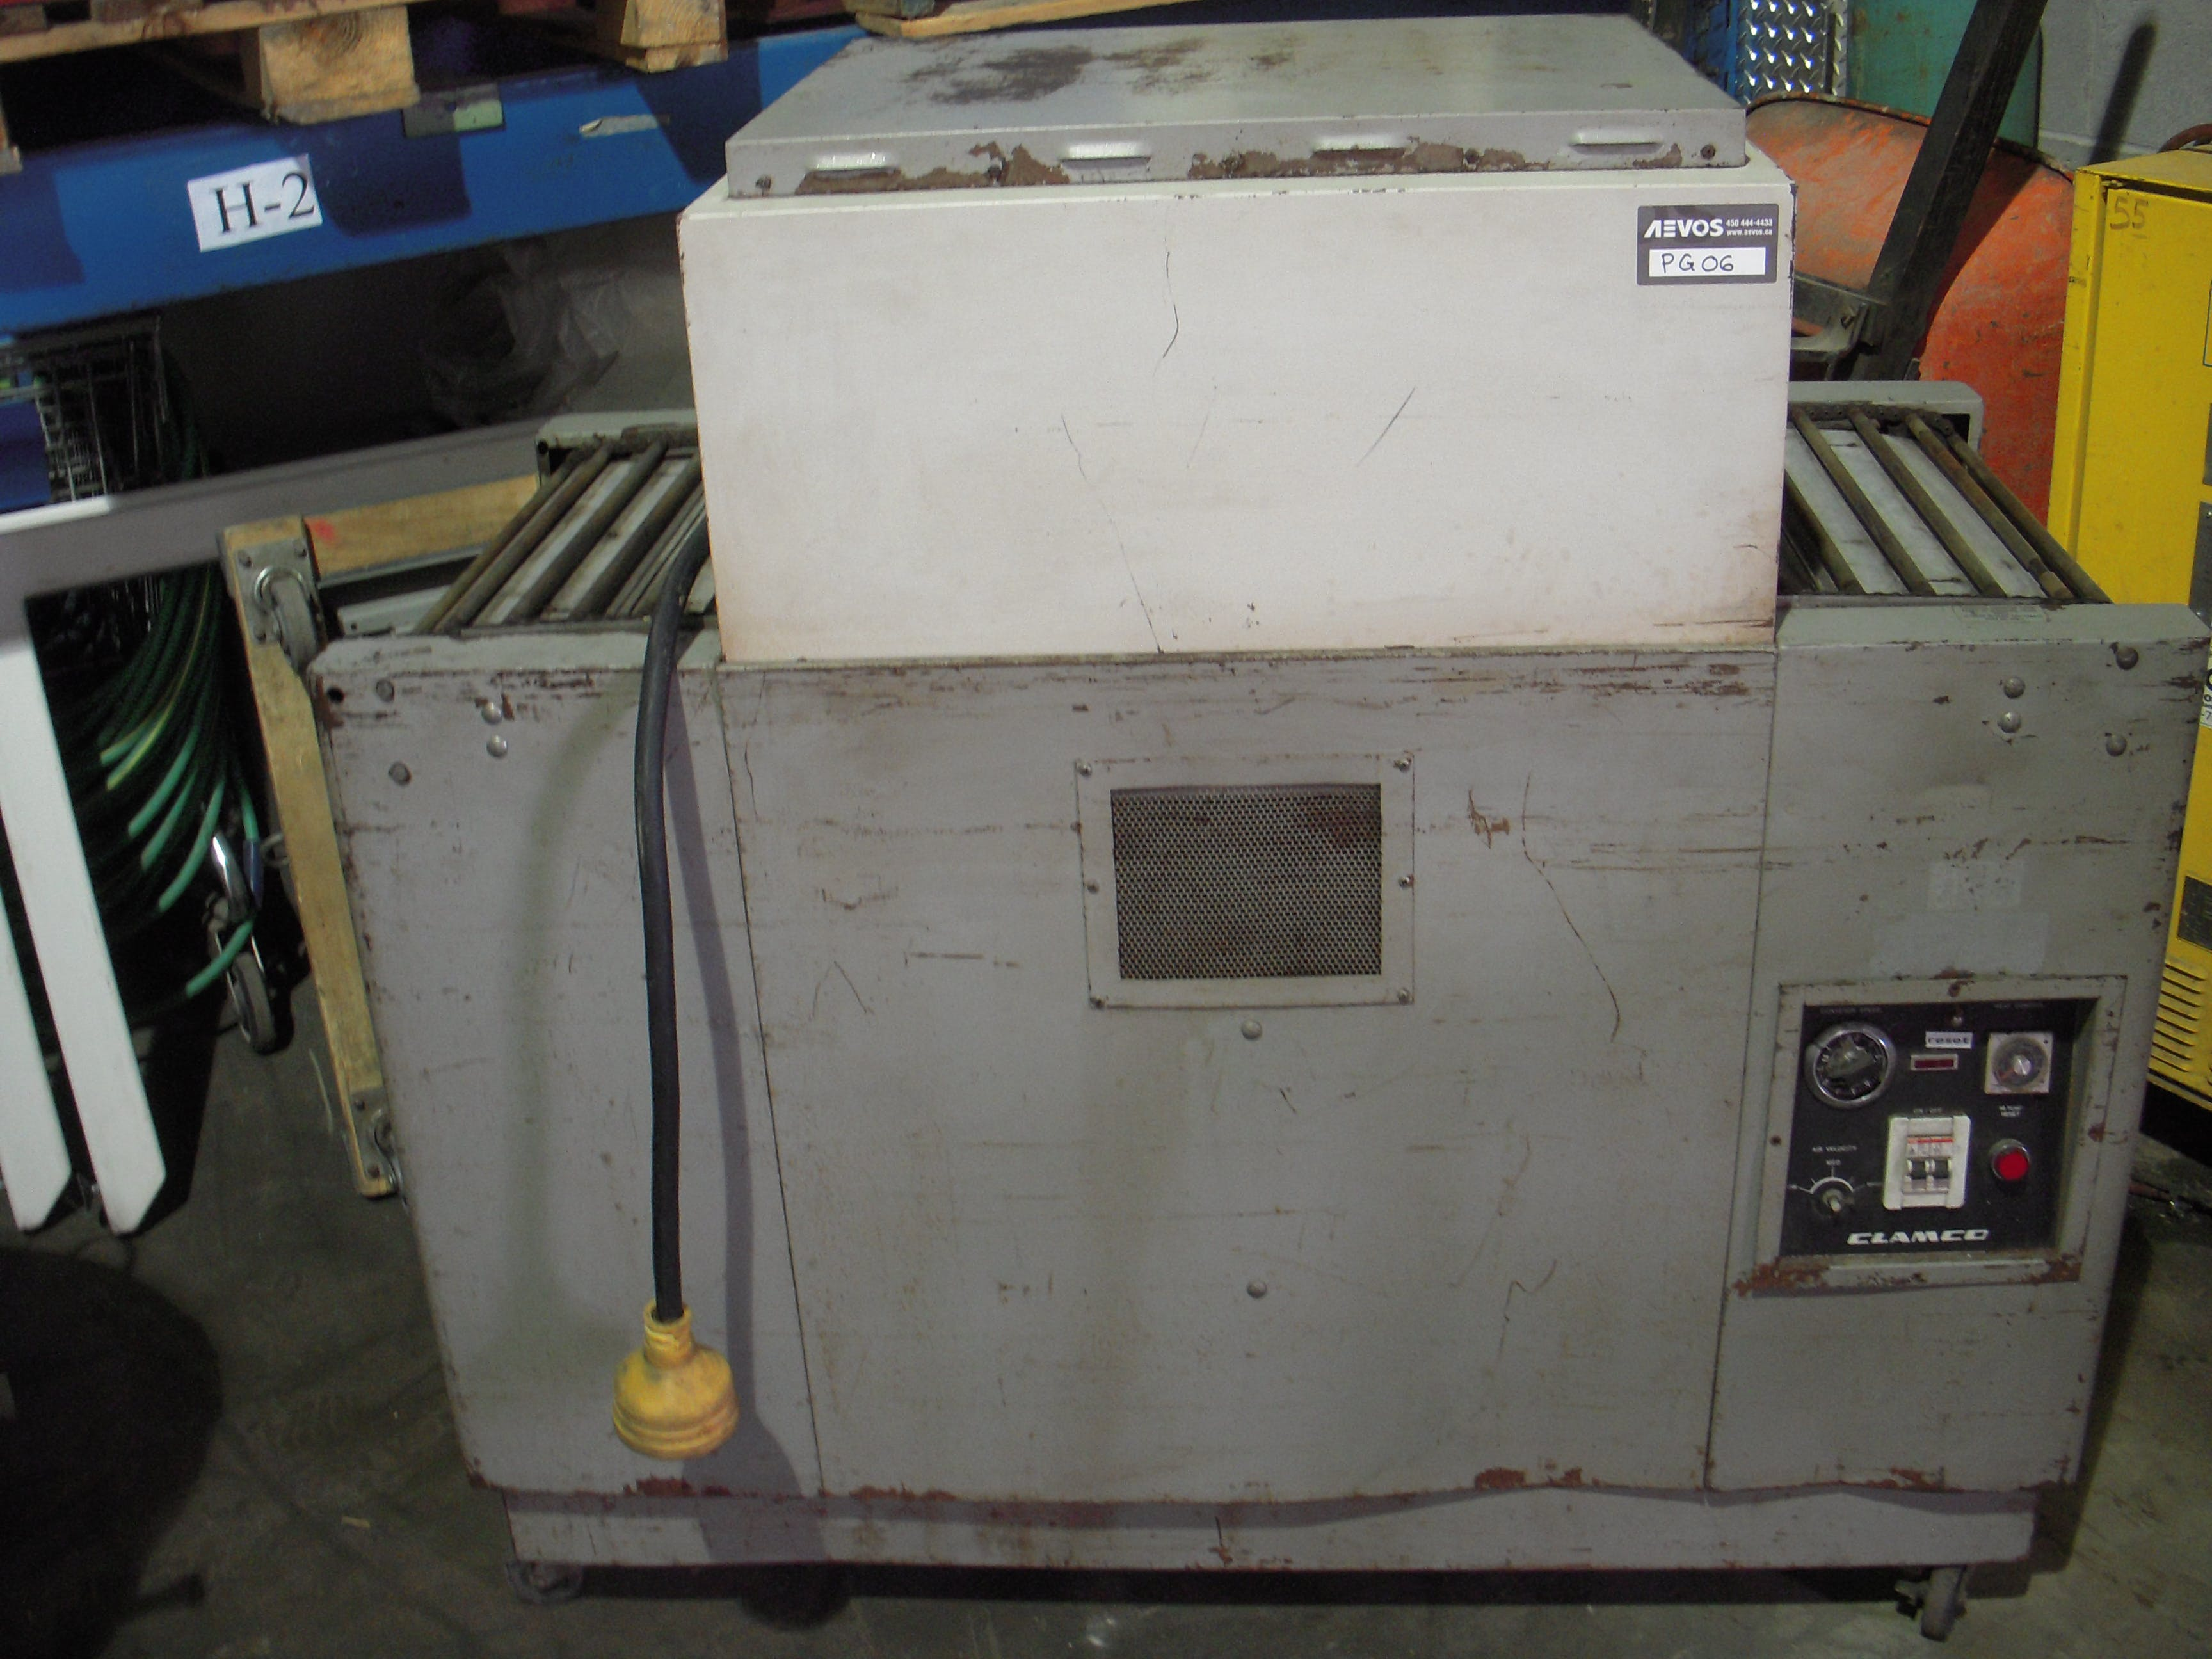 CLAMCO 5881-1 Heat Tunnel - sold by Aevos Equipment